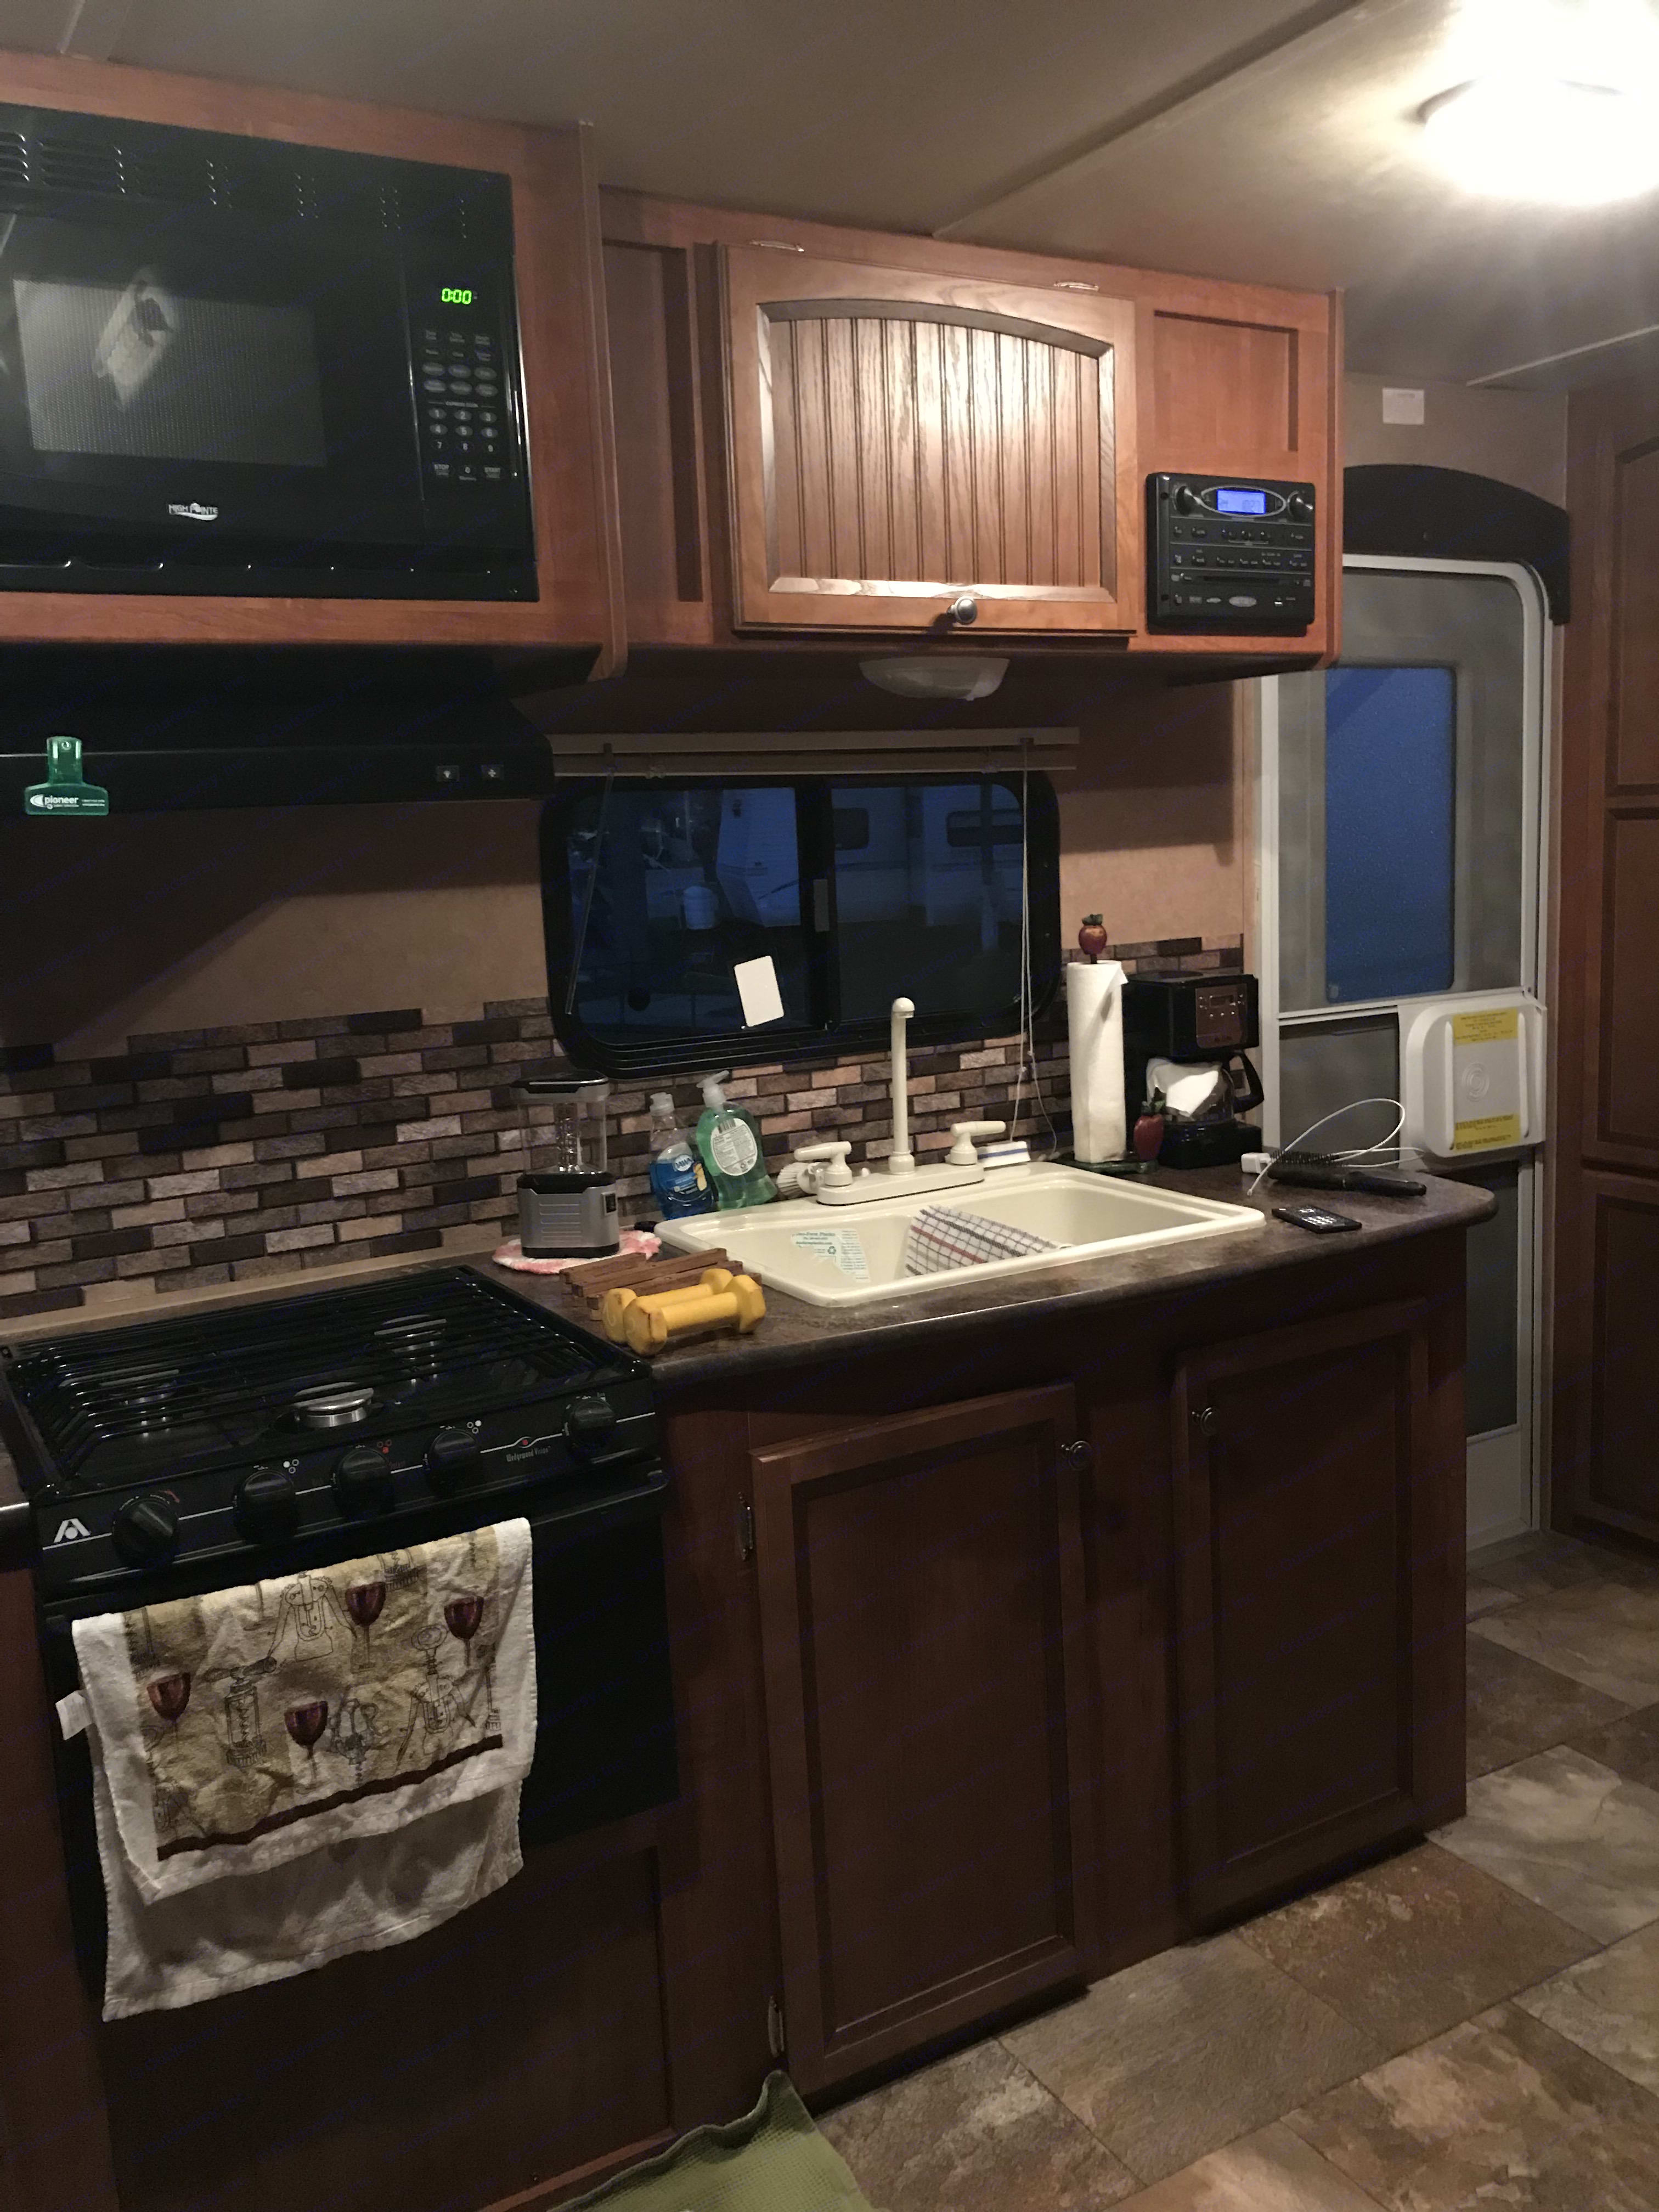 galley kitchen with oven and microwave. Jayco Jay Feather Ultra Lite 2013